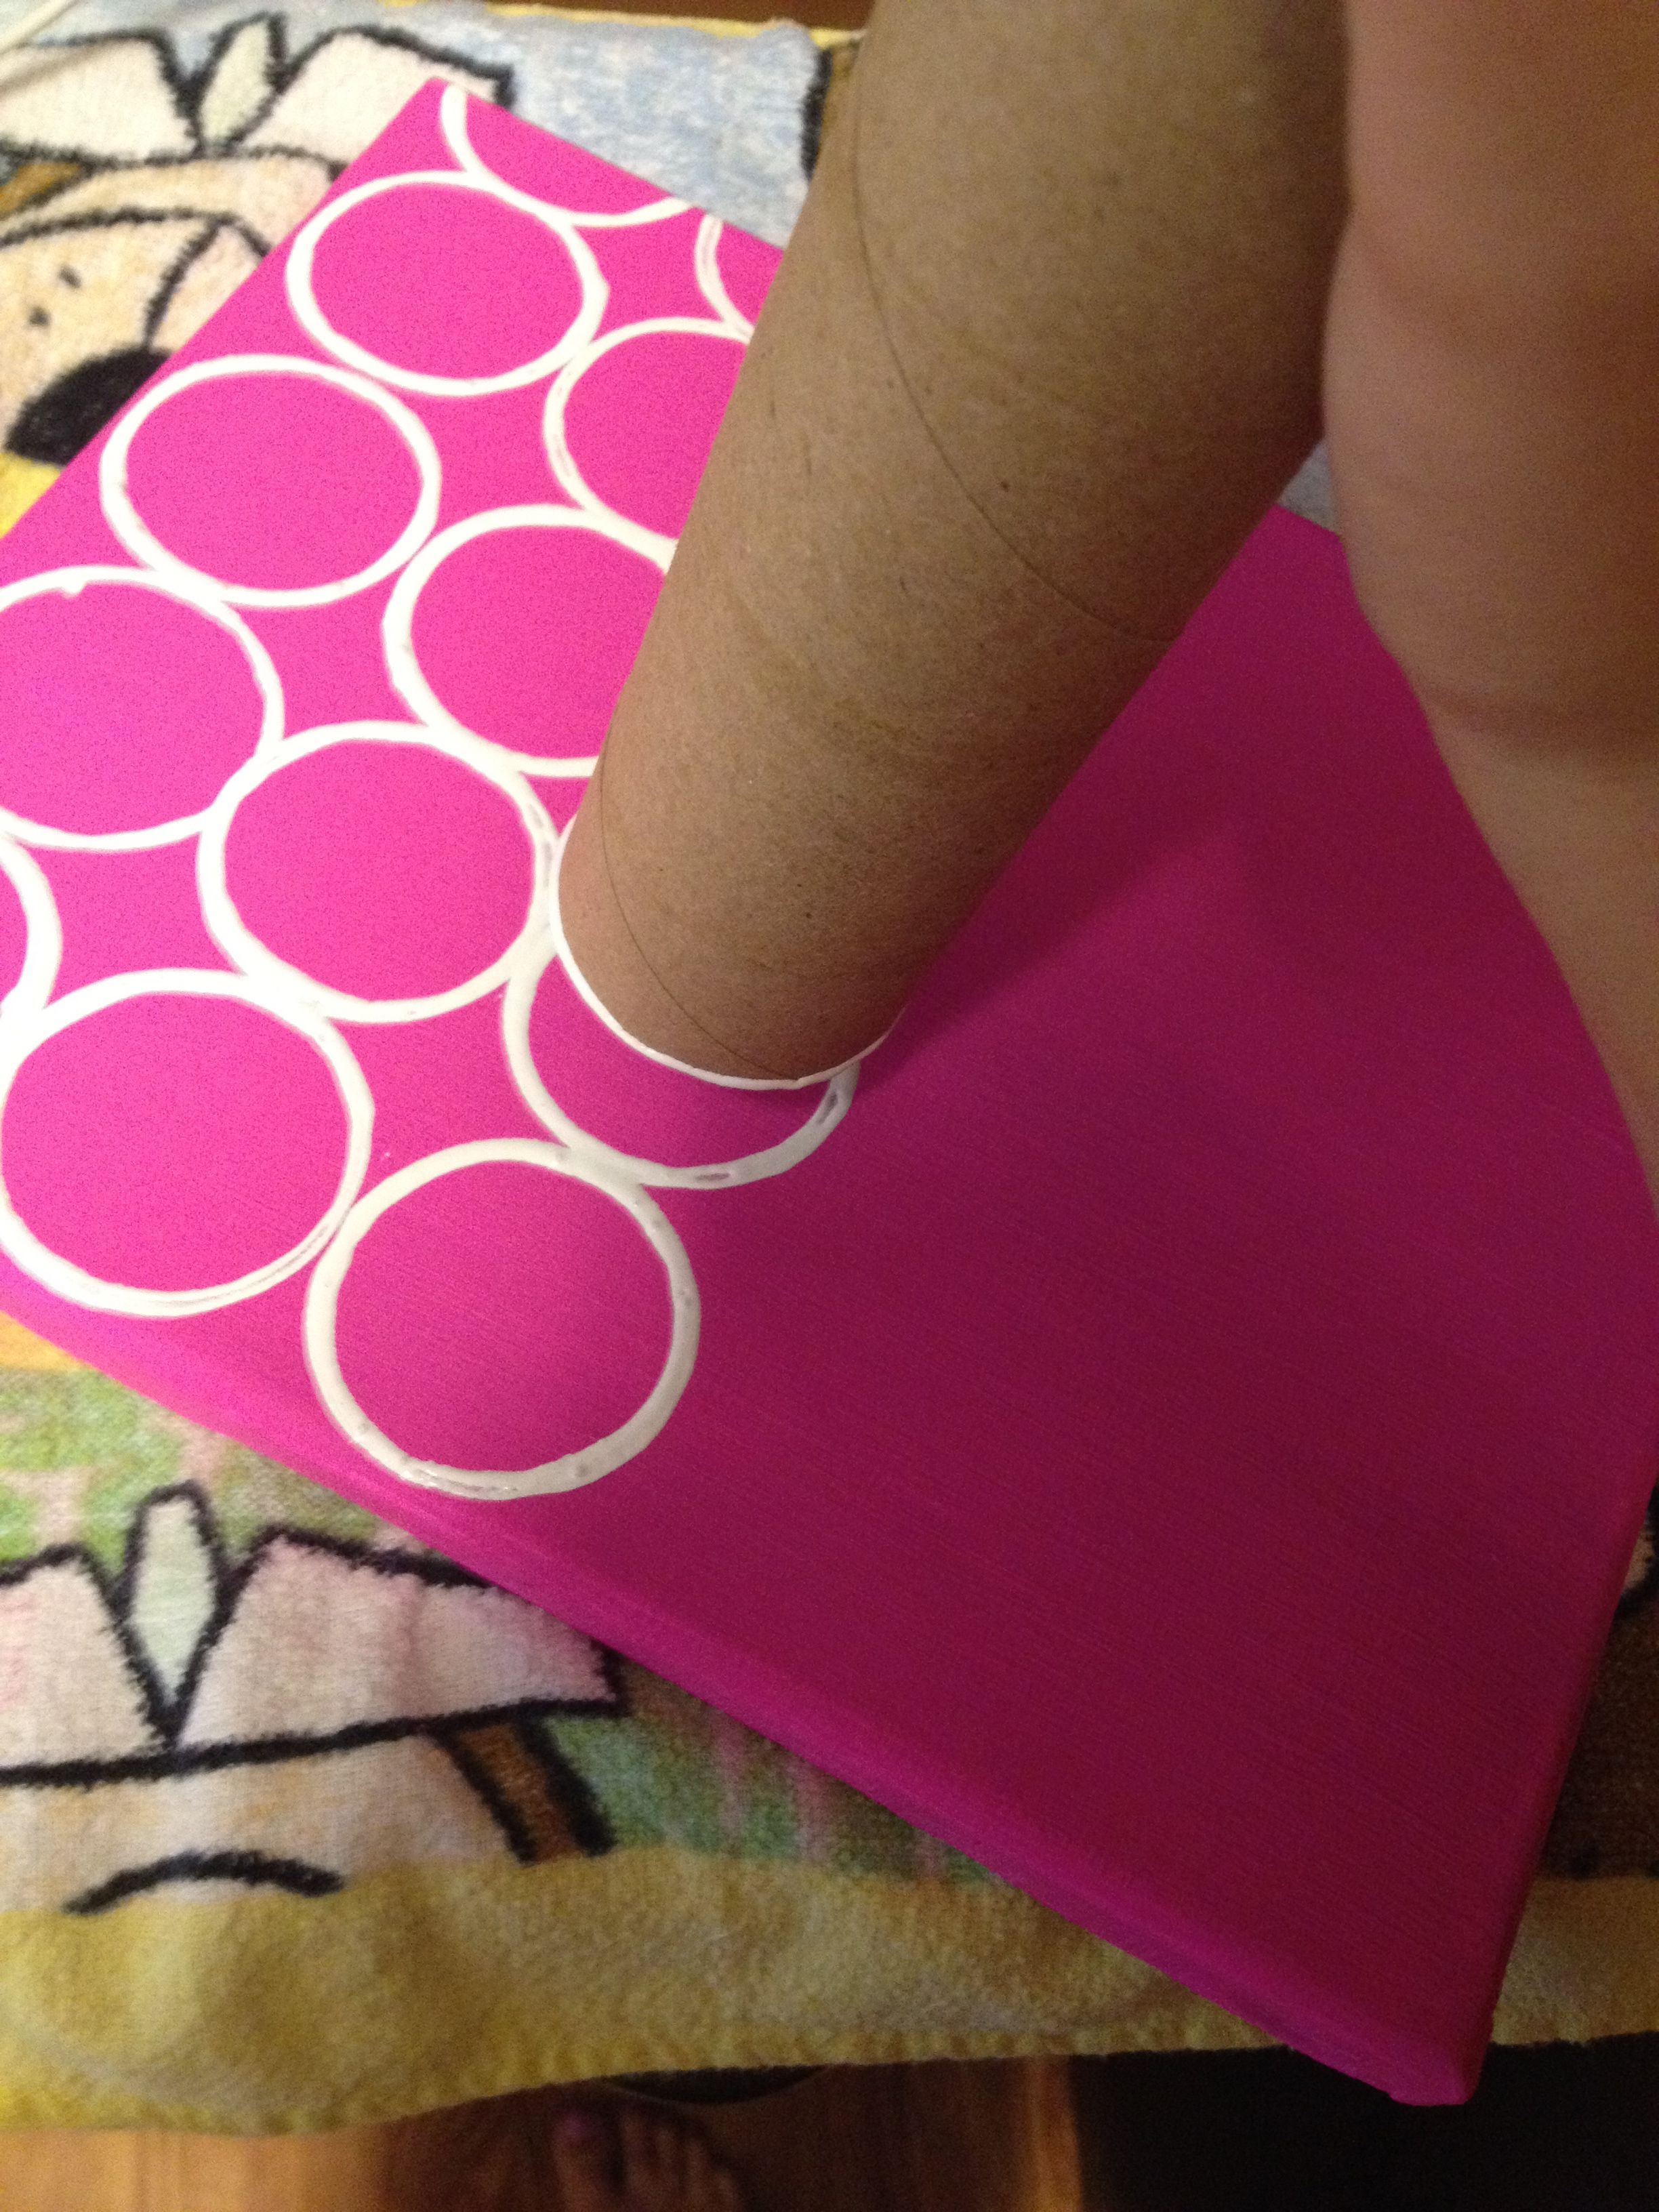 easy teacher gifts - paint canvas, make dots with old toilet paper ...